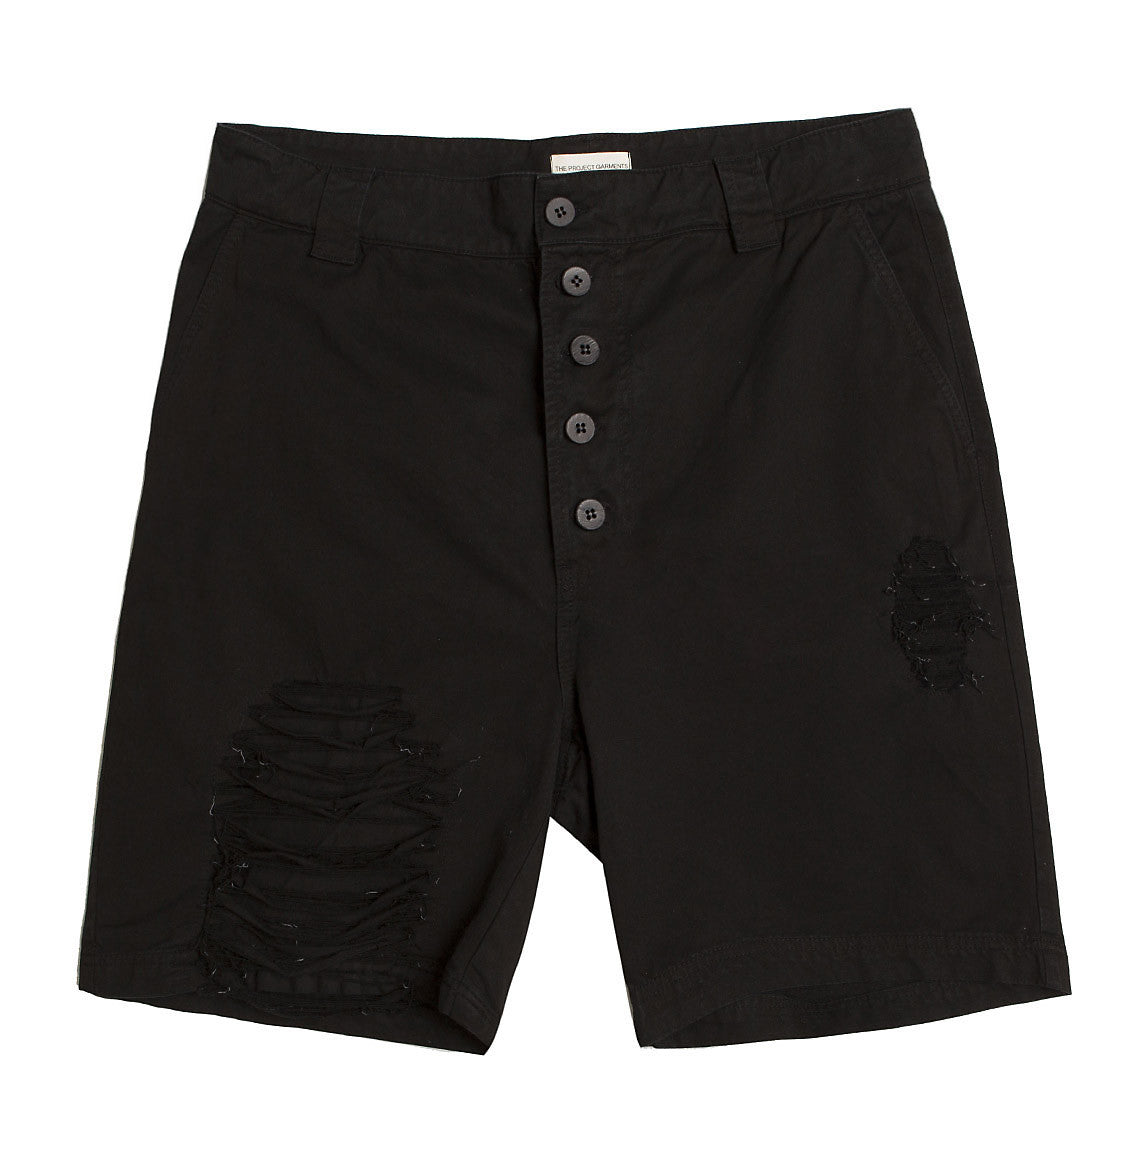 Distressed Straight Leg Washed Cotton Shorts Black | The Project Garments - Product